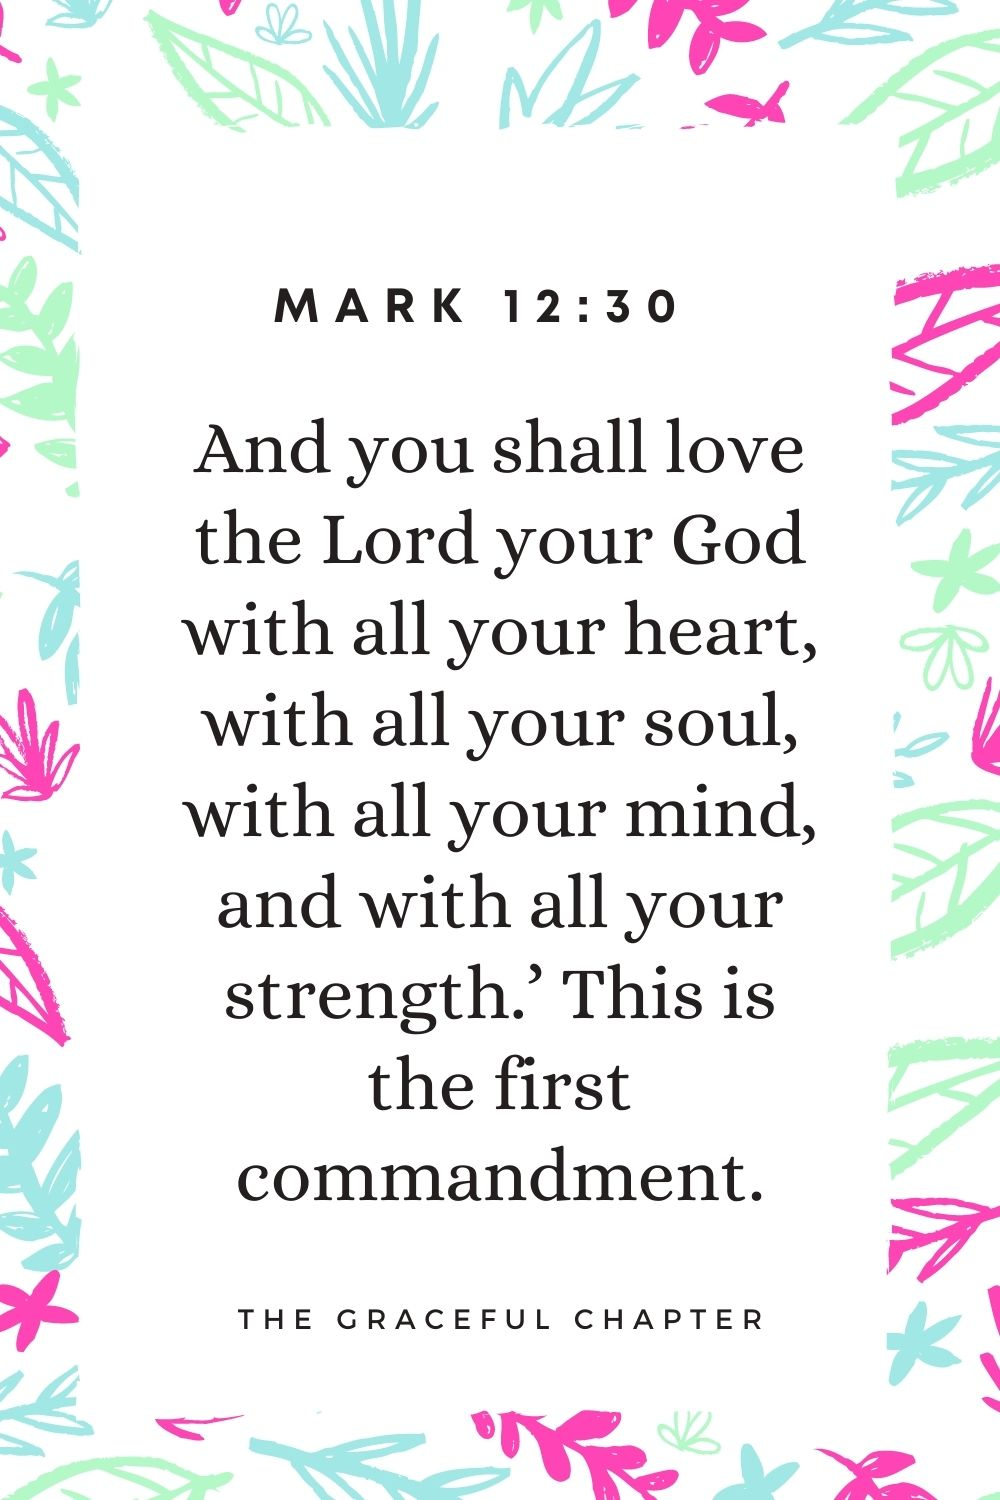 And you shall love the Lord your God with all your heart, with all your soul, with all your mind, and with all your strength.' This is the first commandment. Mark 12:30